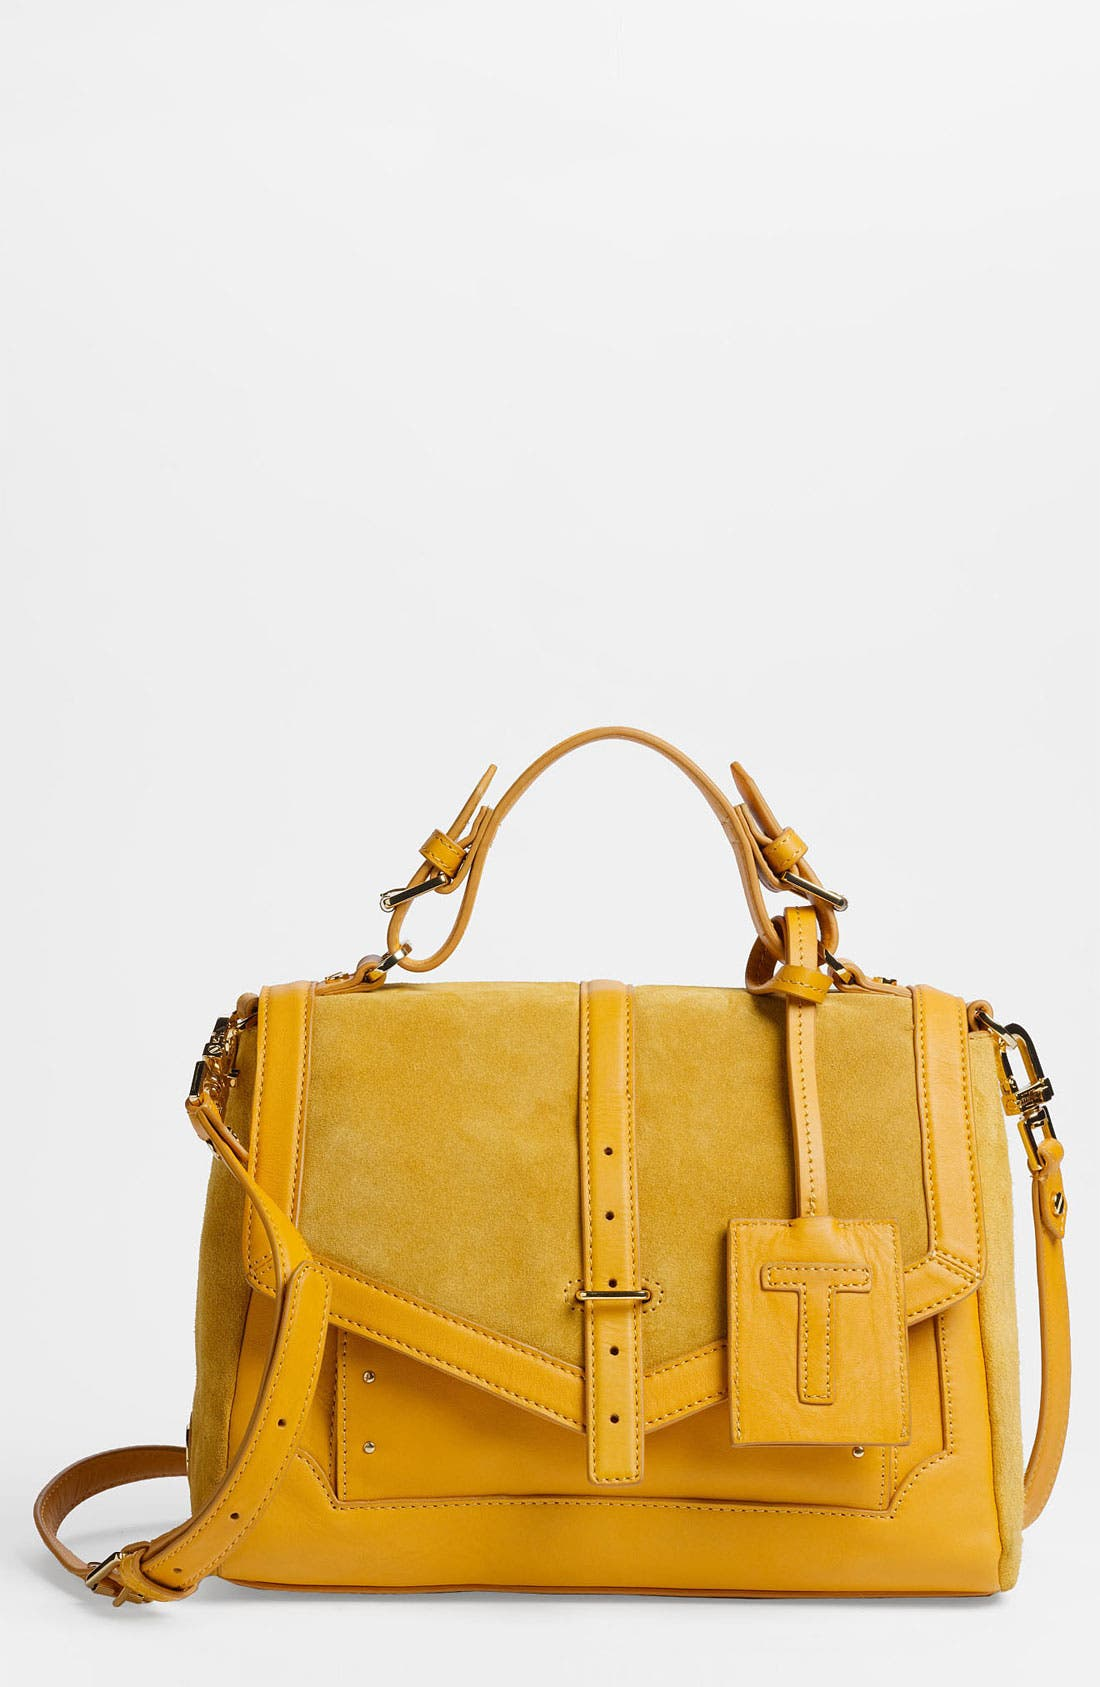 Main Image - Tory Burch '797 - Medium' Suede & Leather Satchel